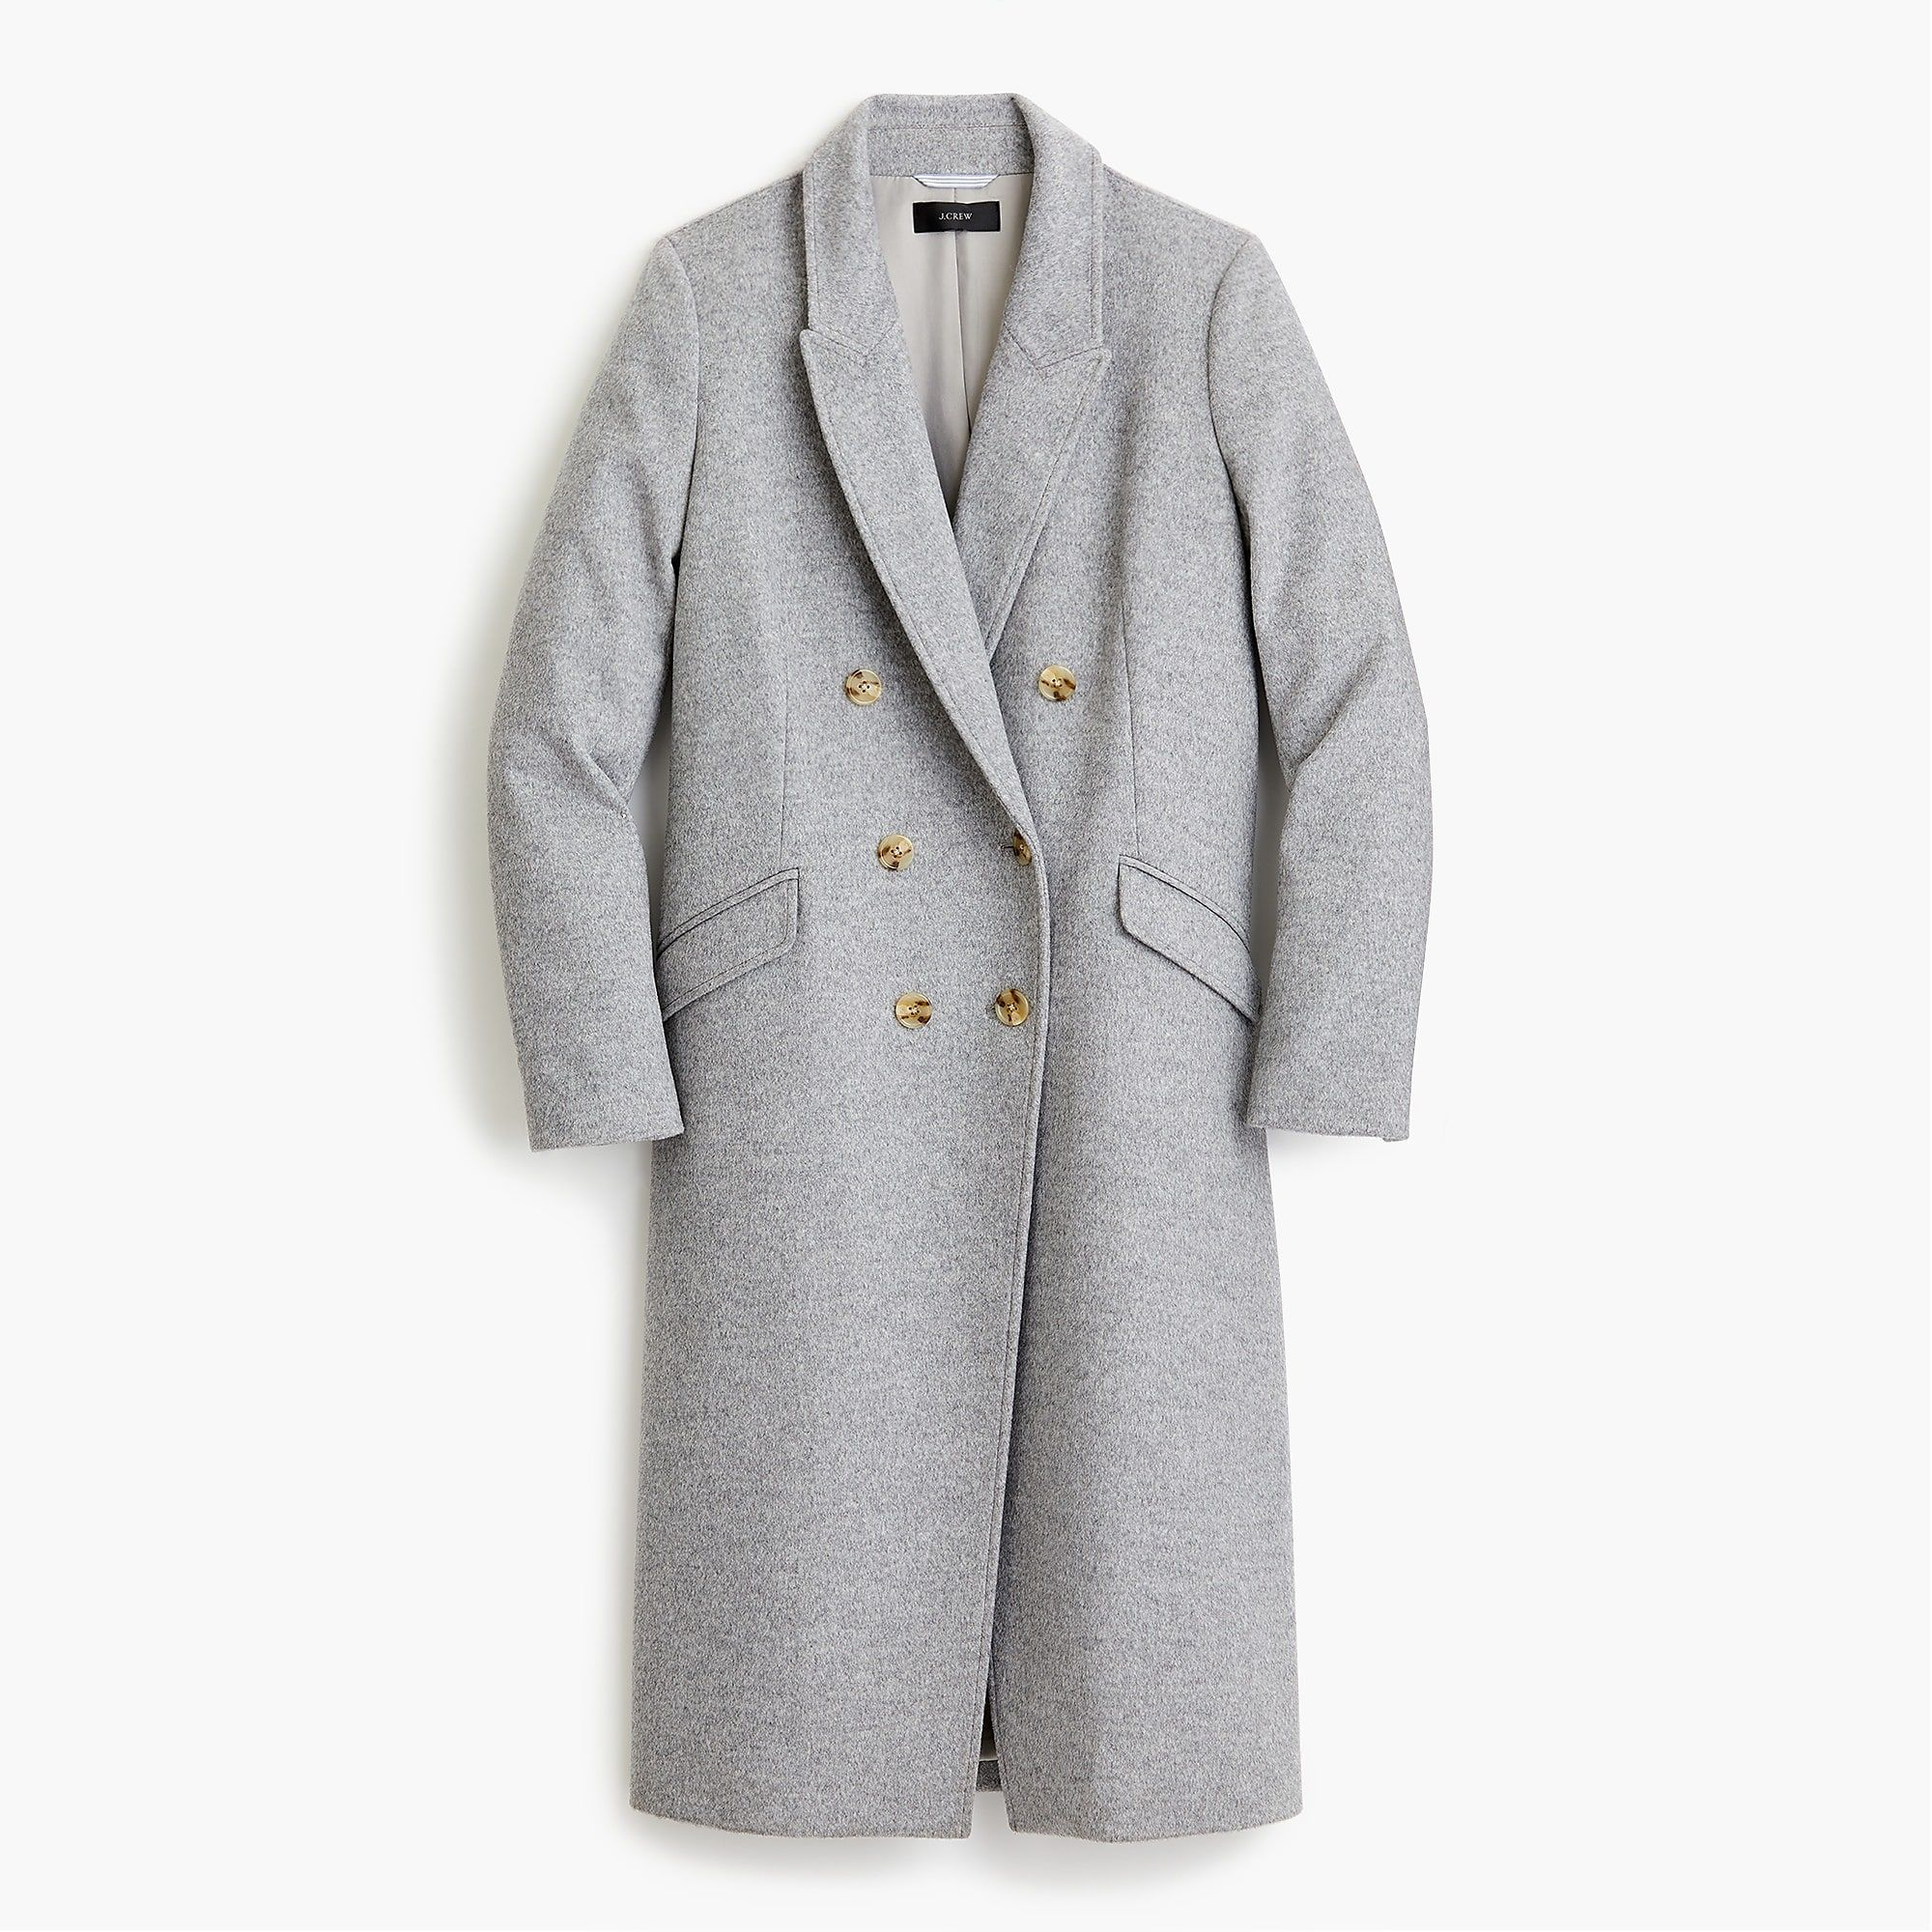 Long Double Breasted Topcoat In Wool Cashmere Women Coats Jackets J Crew Clothing Blogs Double Breasted Outerwear Women